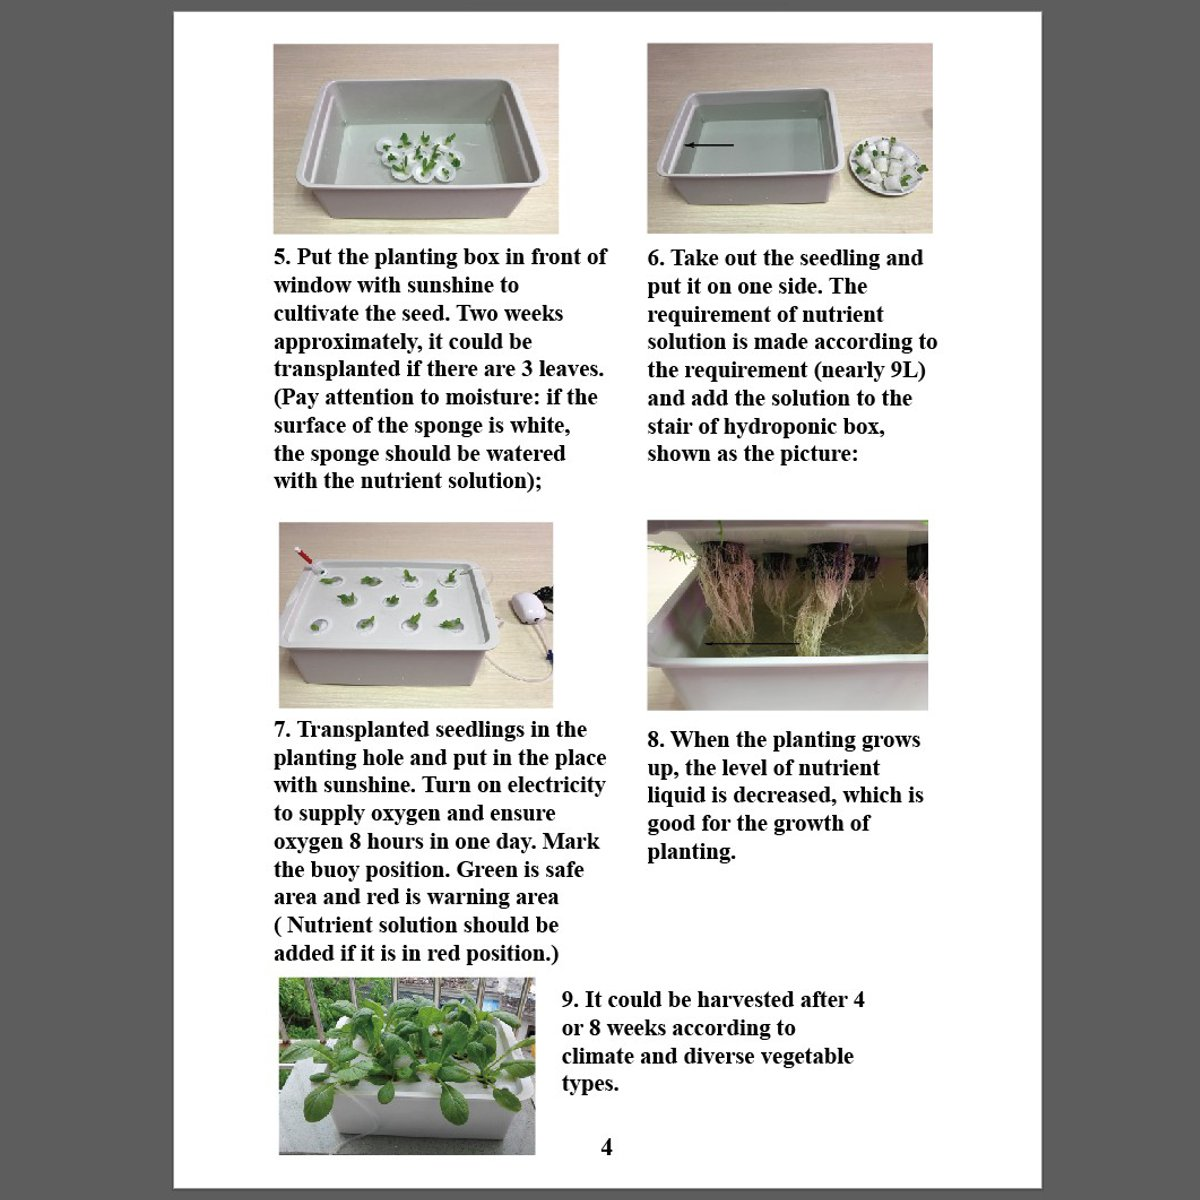 220V Hydroponic Grow Box 9 Holes DWC Indoor Aerobic Soilless Cultivation System Kit Water Planting